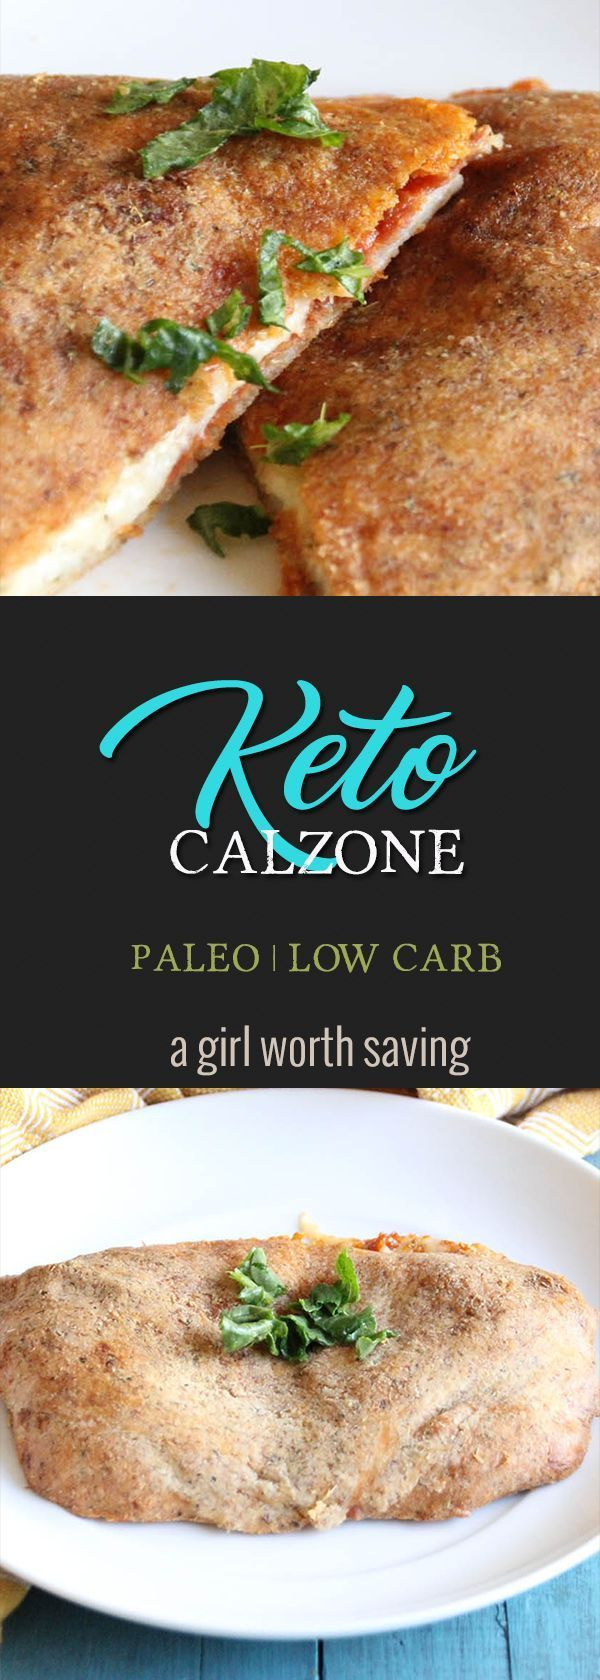 Looking for a Keto calzone recipes with the perfect bread-like dough? You hit the jackpot! Made with healthy almond flour that is good for eye health. @DiscountGlasses via @bejelly